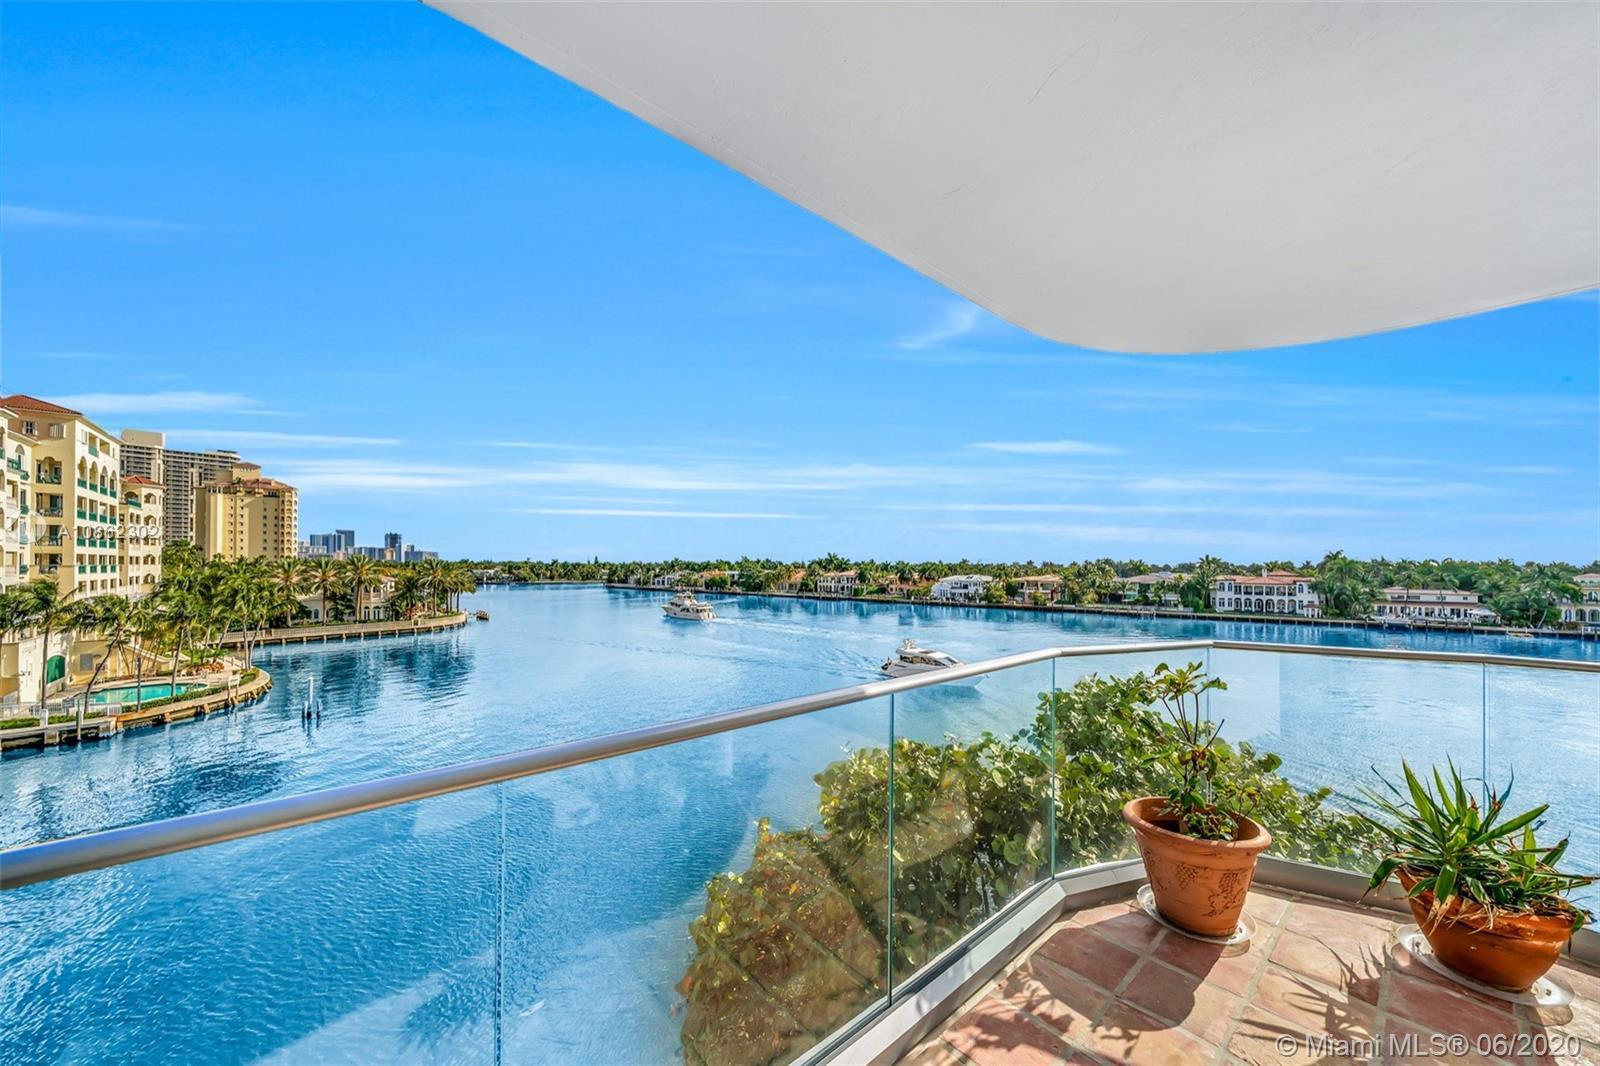 Luxurious corner unit at the Turnberry with breathtaking water views. This extremely spacious 4,200